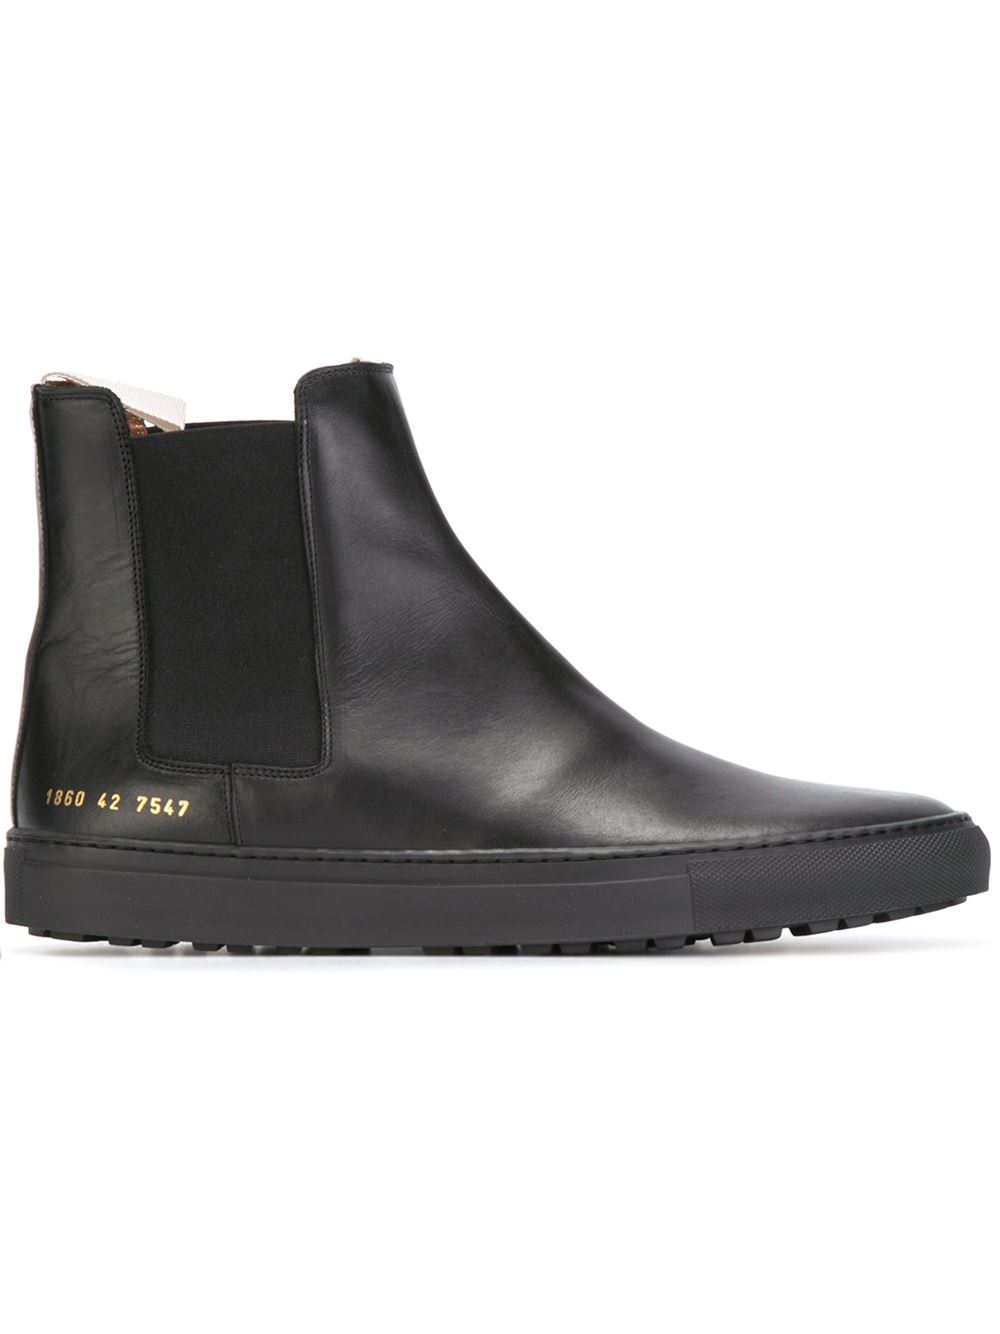 Common Projects Leather Chelsea Boots In Black For Men Lyst